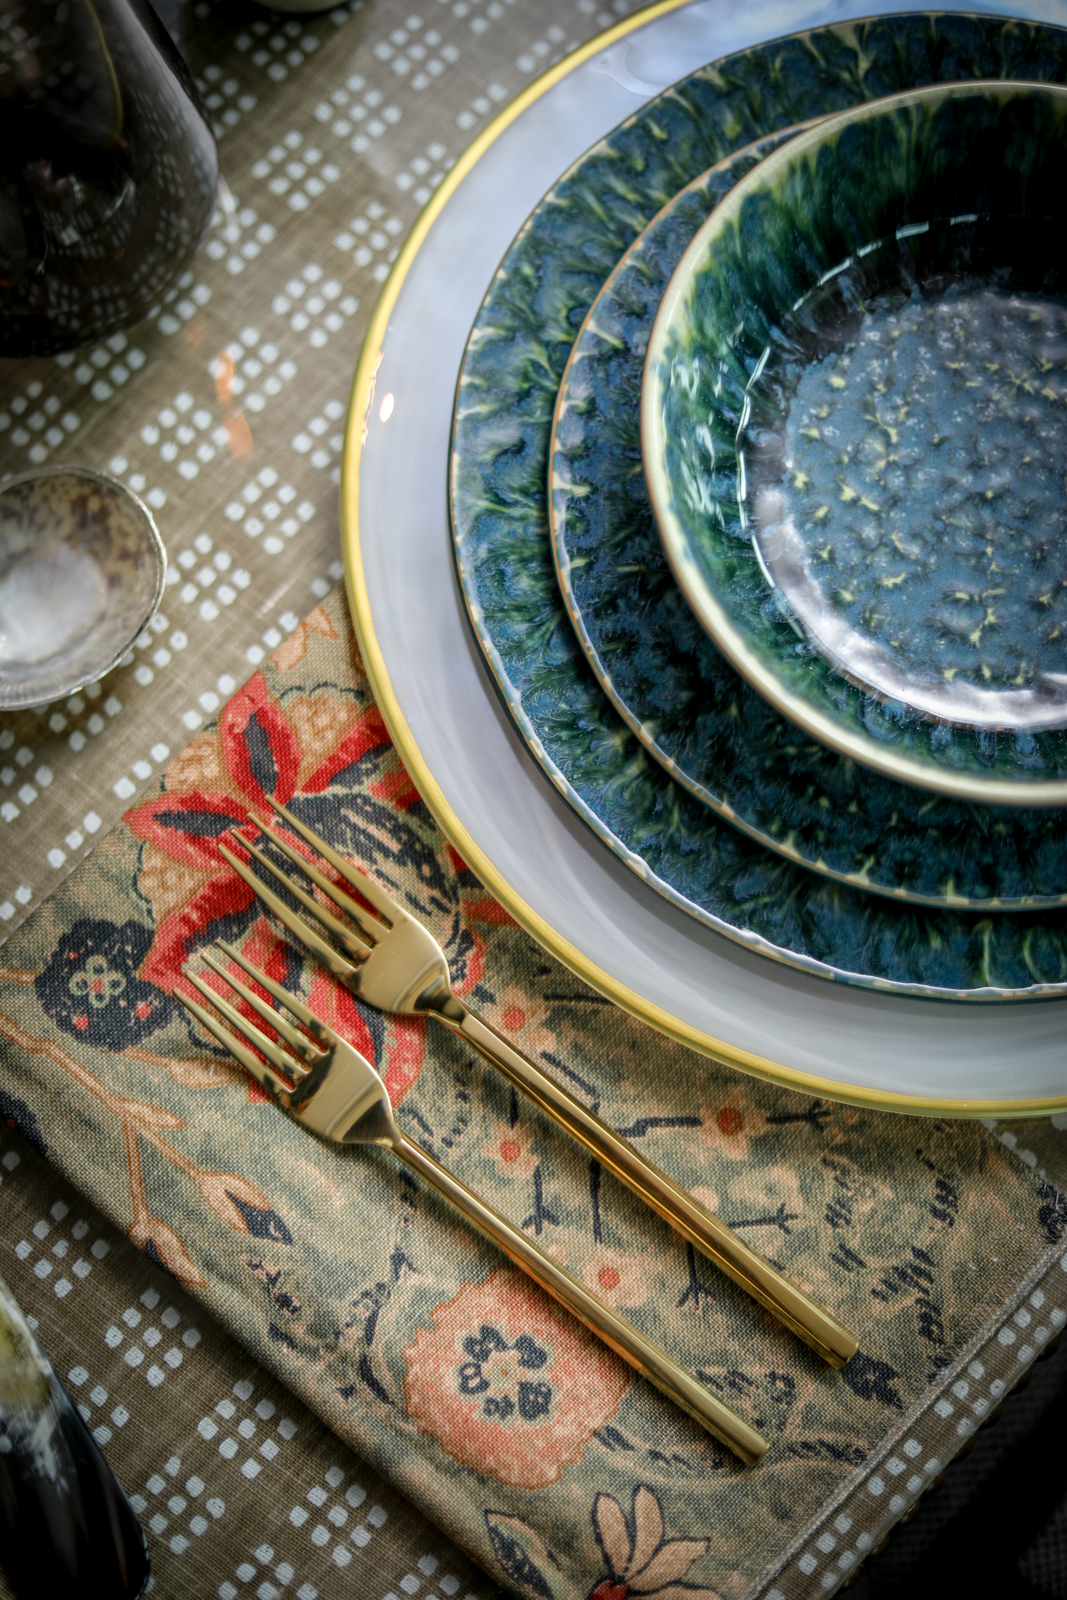 Tablescape-Modern-Textiles-Floral-Green-Gold-Napkin.jpg